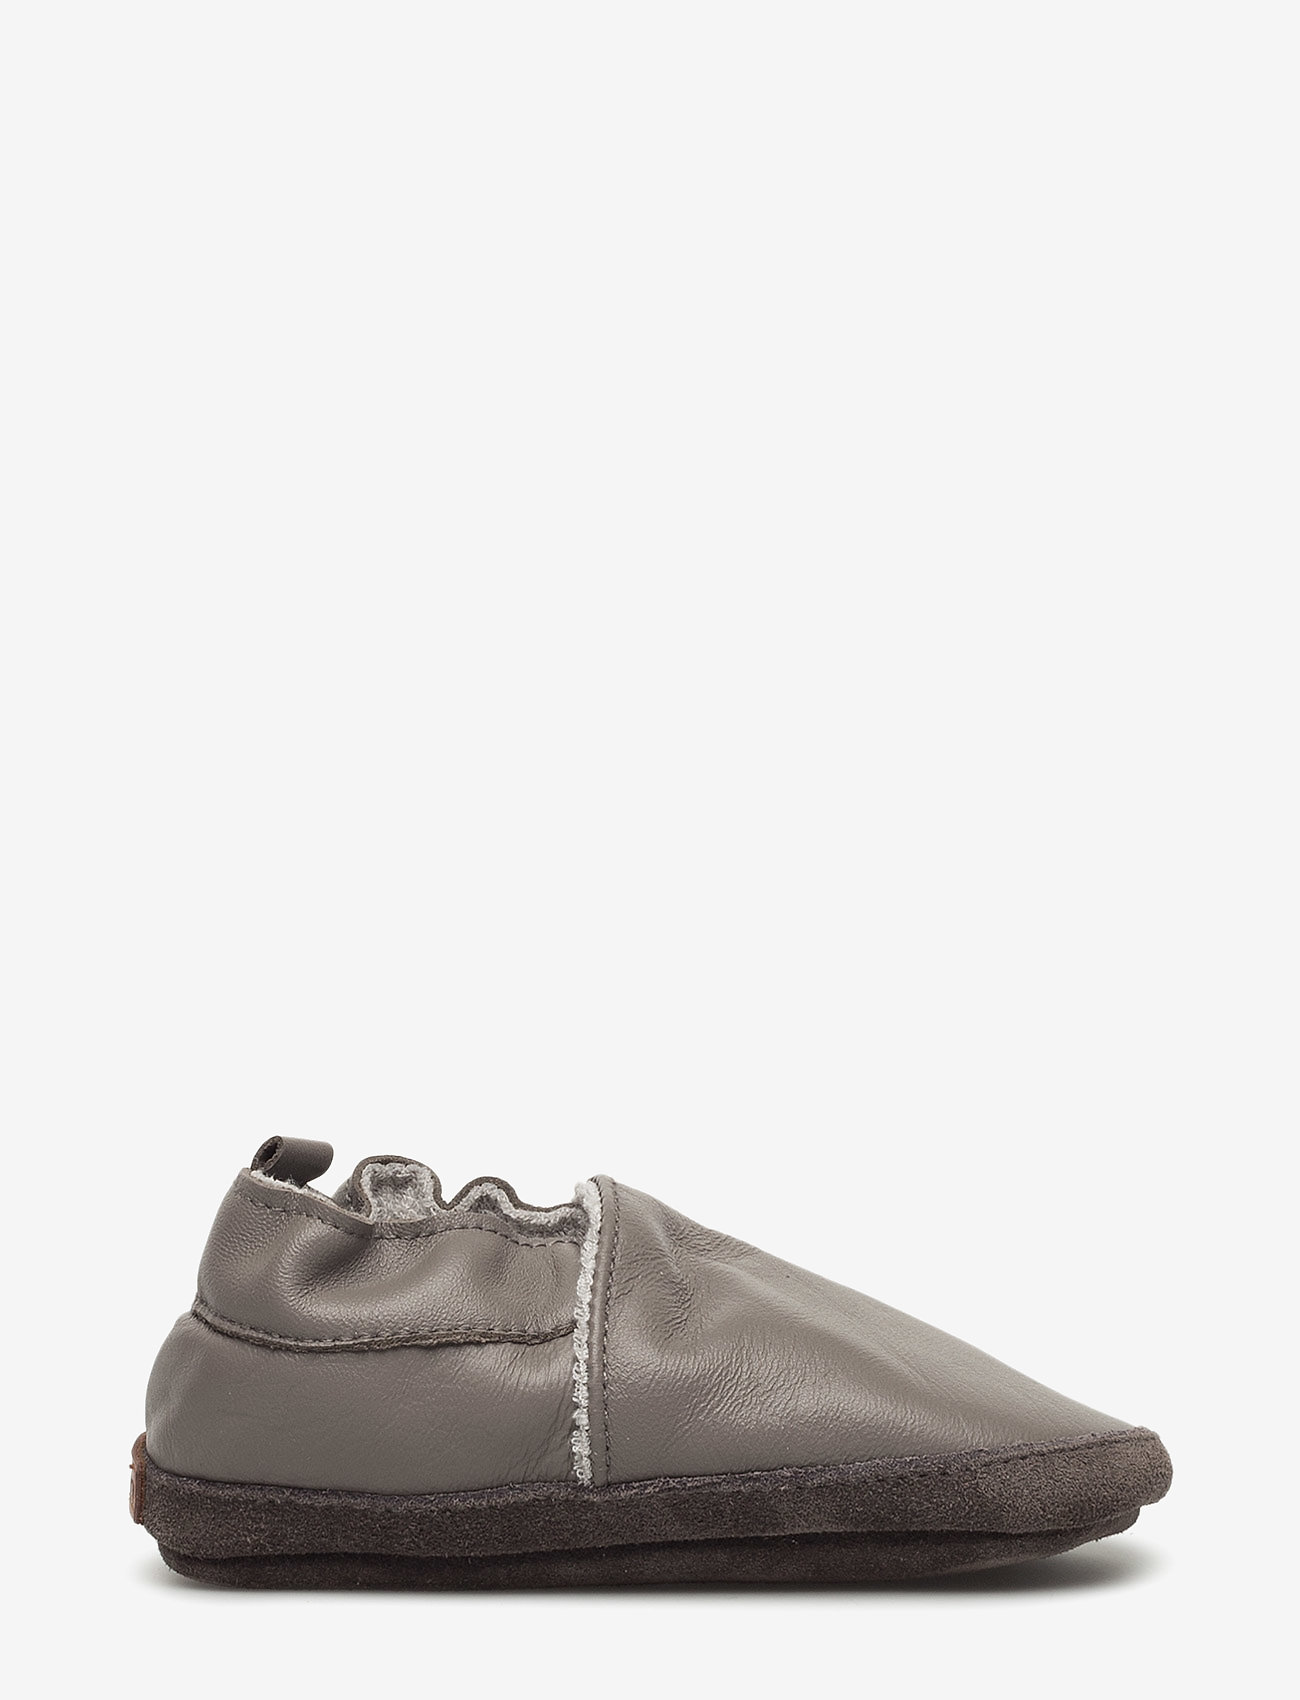 Melton - Leather shoe - Loafer - hausschuhe - 150/darkgrey - 1